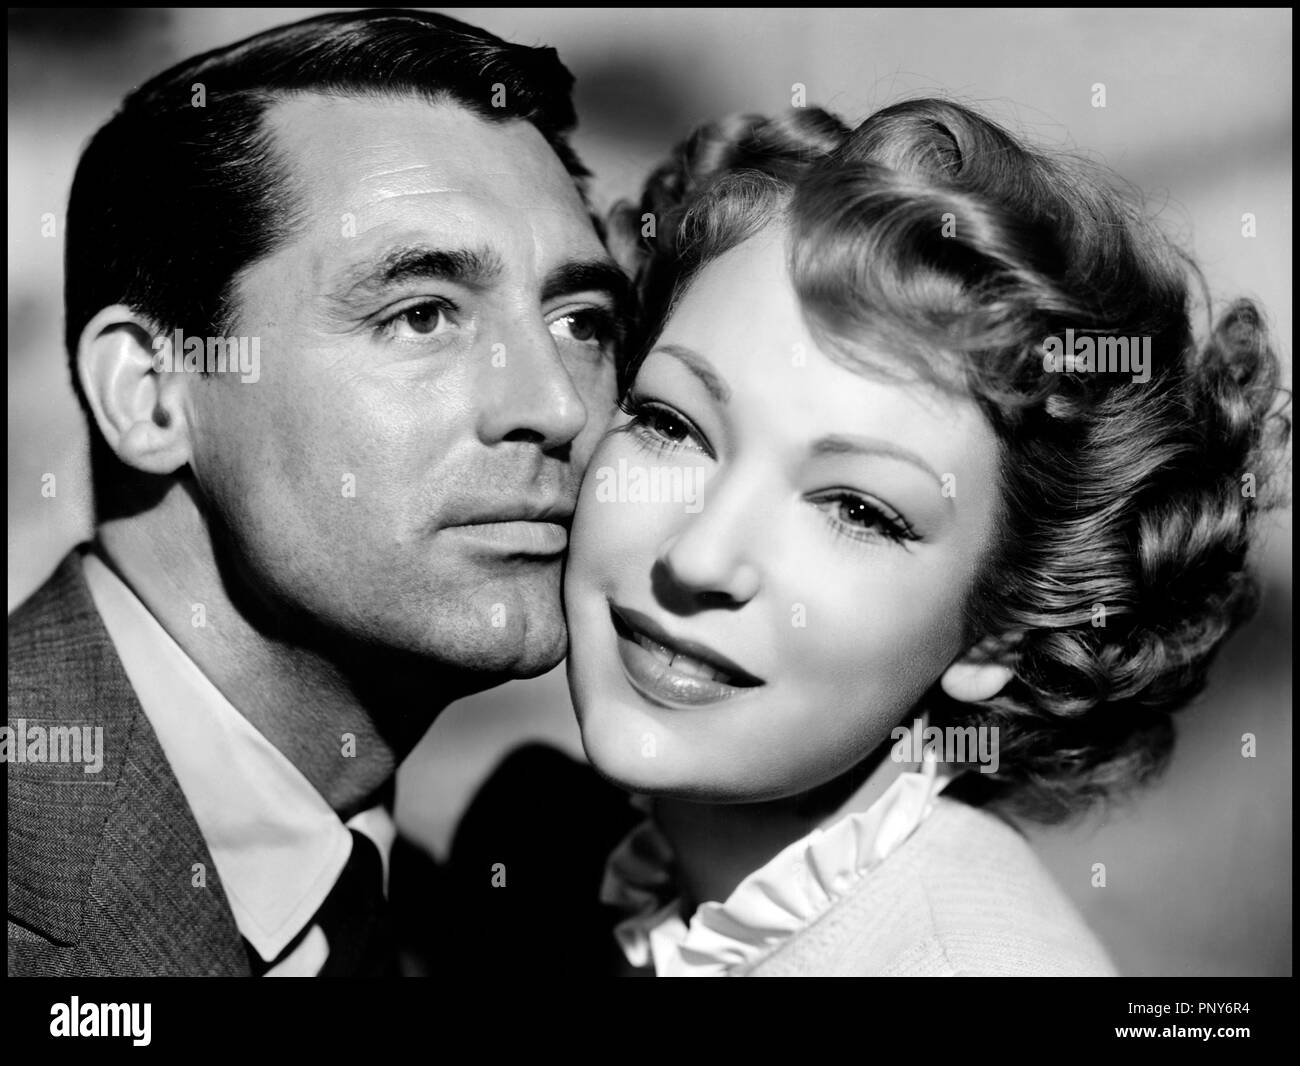 cd1b6ad08 None But The Lonely Heart 1944 Cary Grant Stock Photos & None But ...